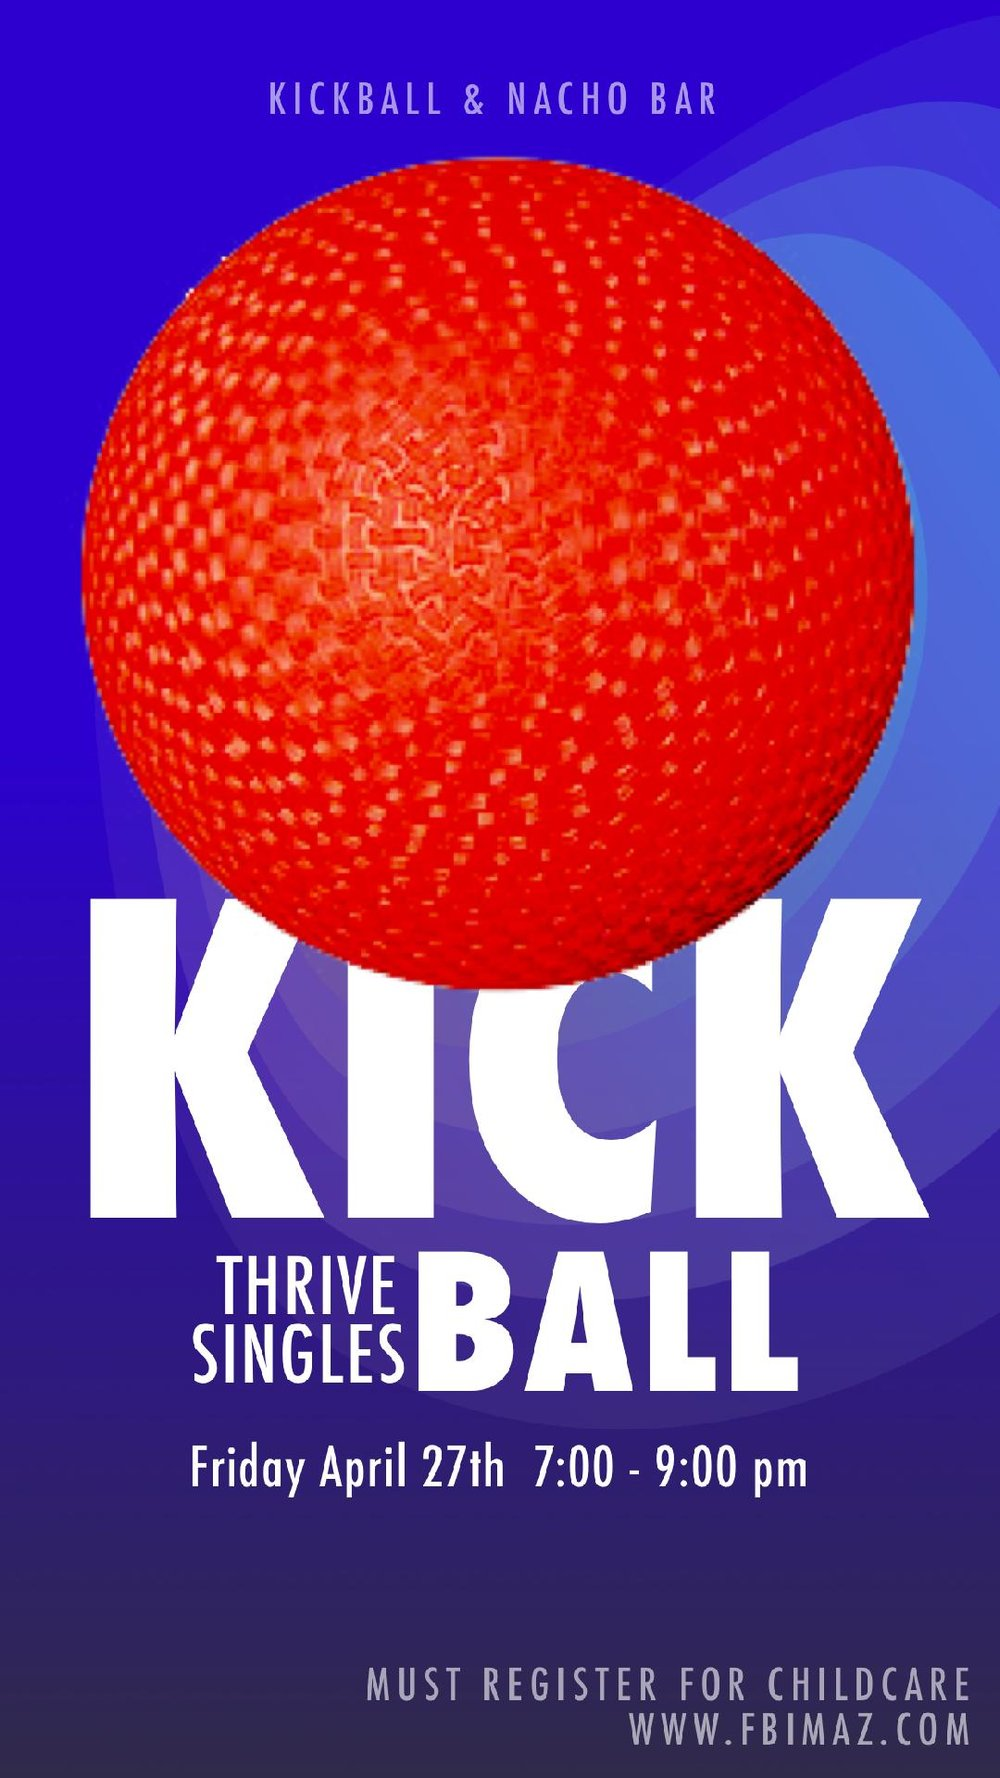 Thrive Singles Kickball - Friday, April 27th 7:00 pm - 9:00 pm